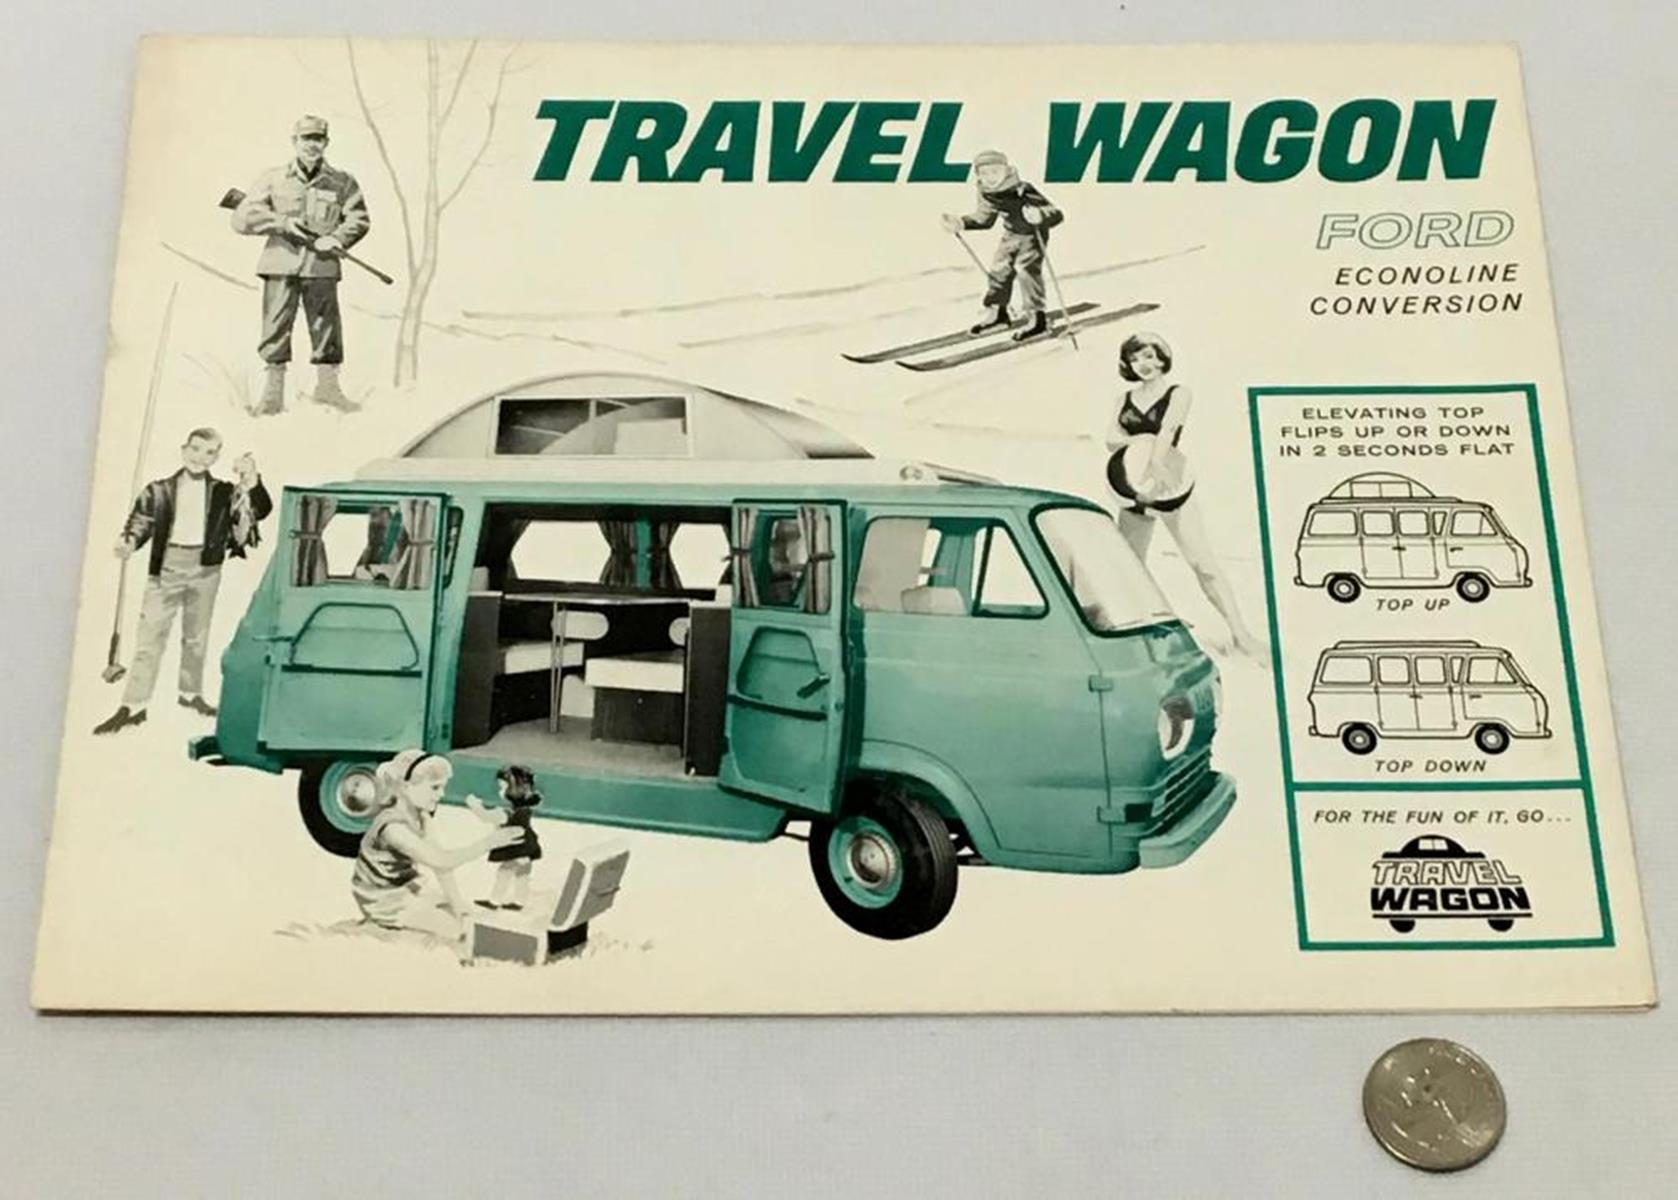 Vintage 1963 Ford Travel Wagon Advertising Brochure